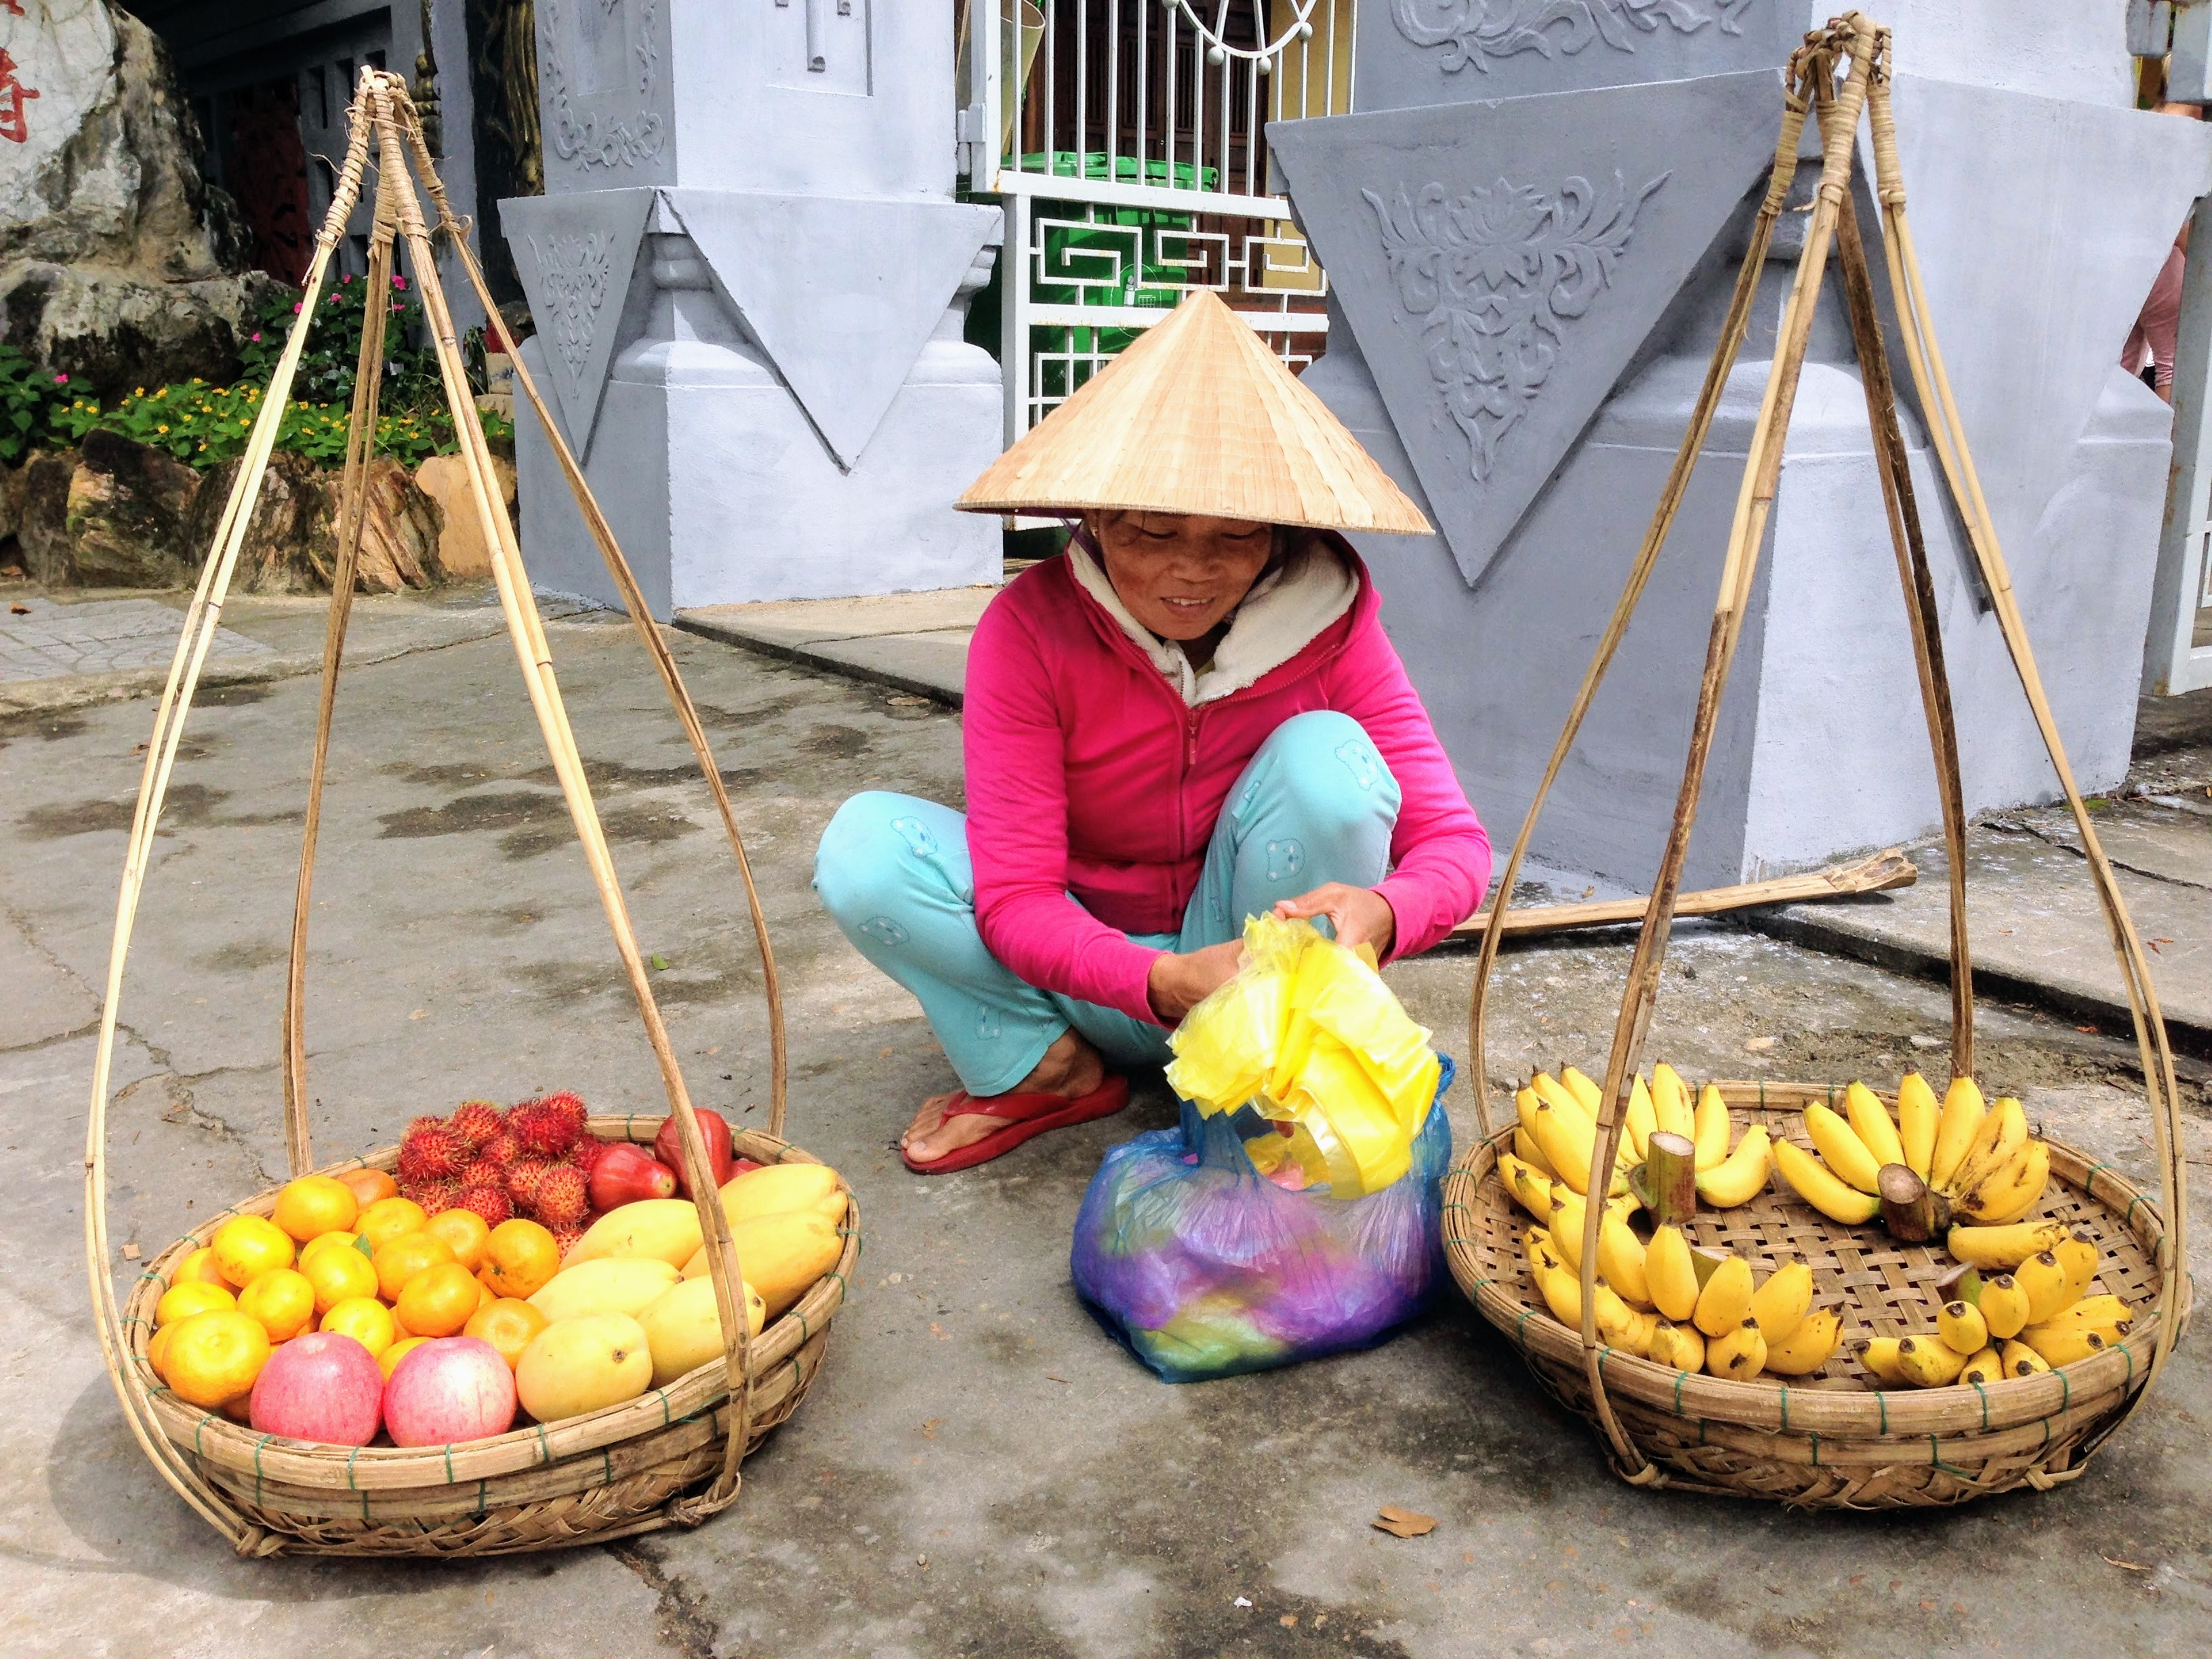 Fruit Vietnam Street Food Vendor Baskets Hoi An